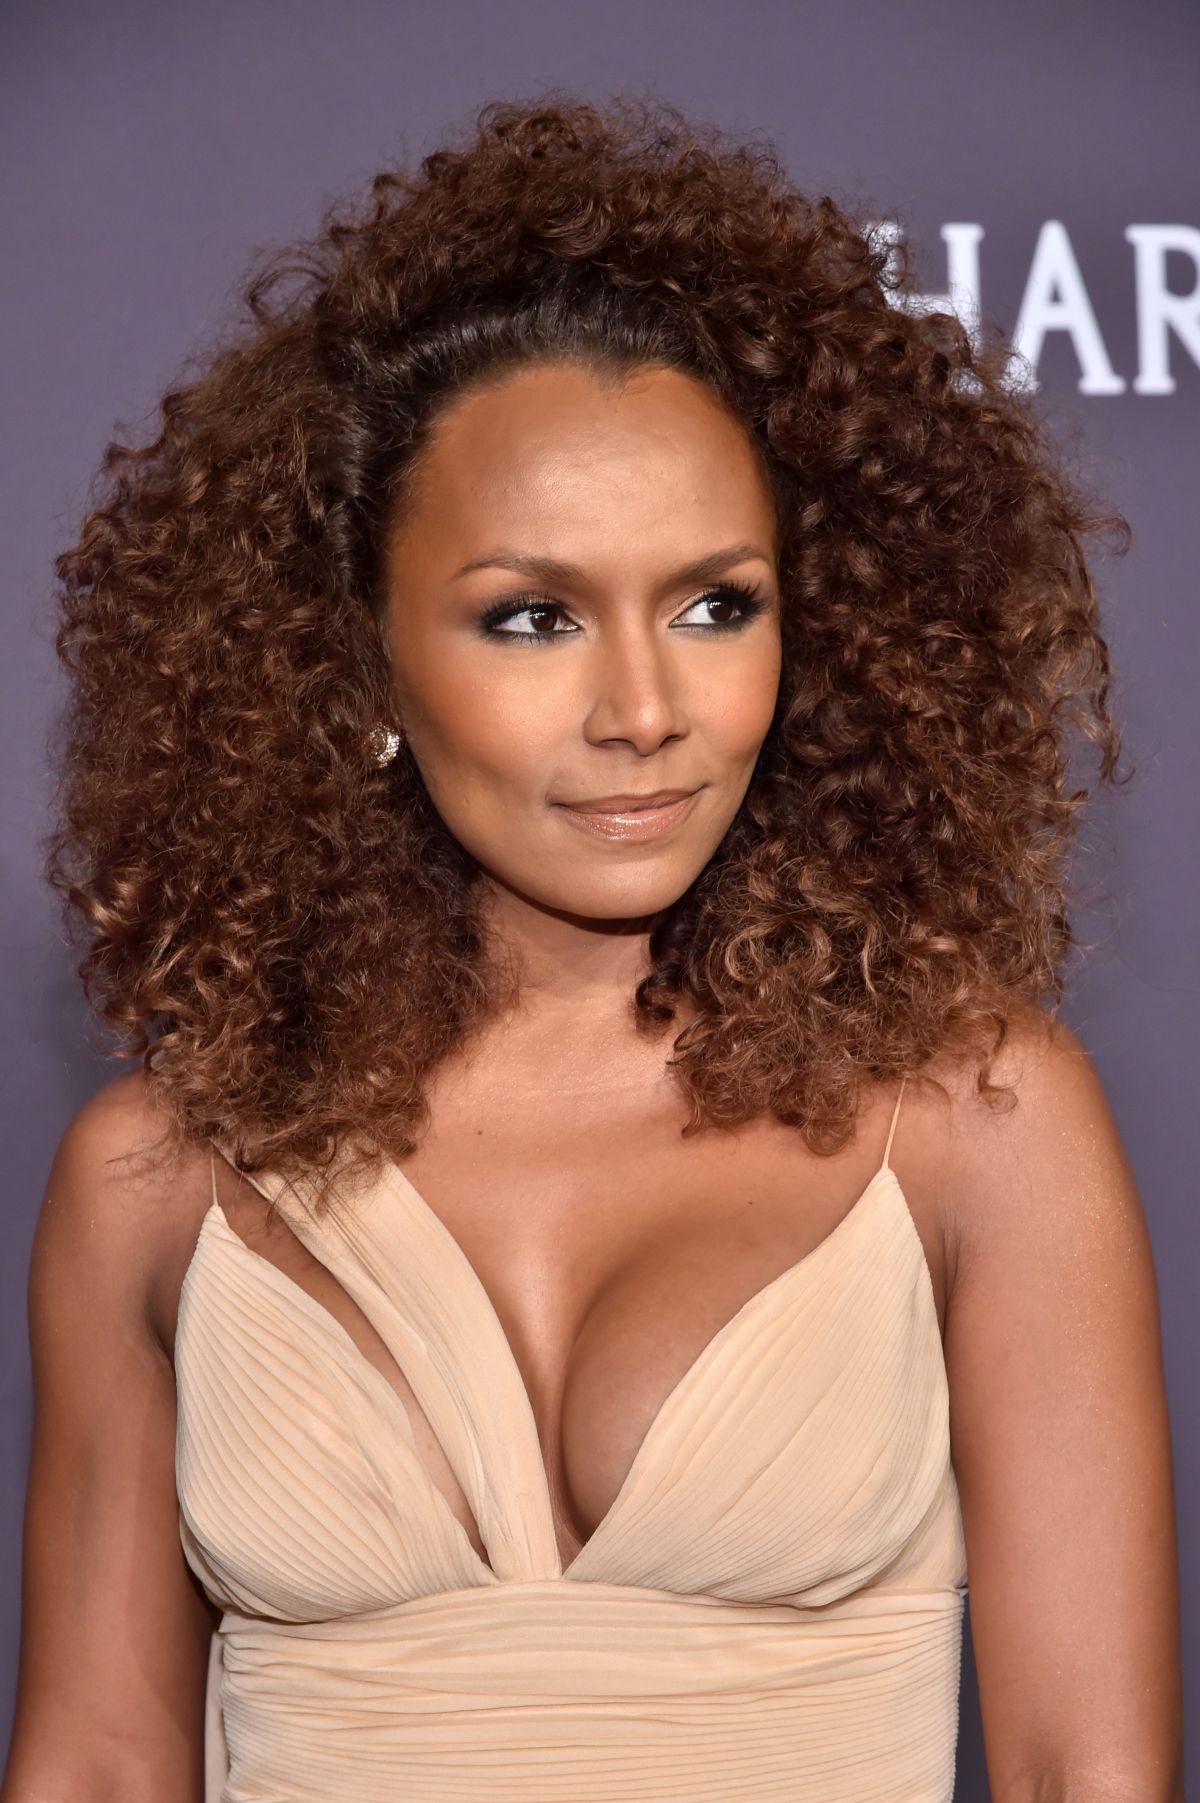 JANET MOCK at AMFAR 2017 New York Gala 02/08/2017